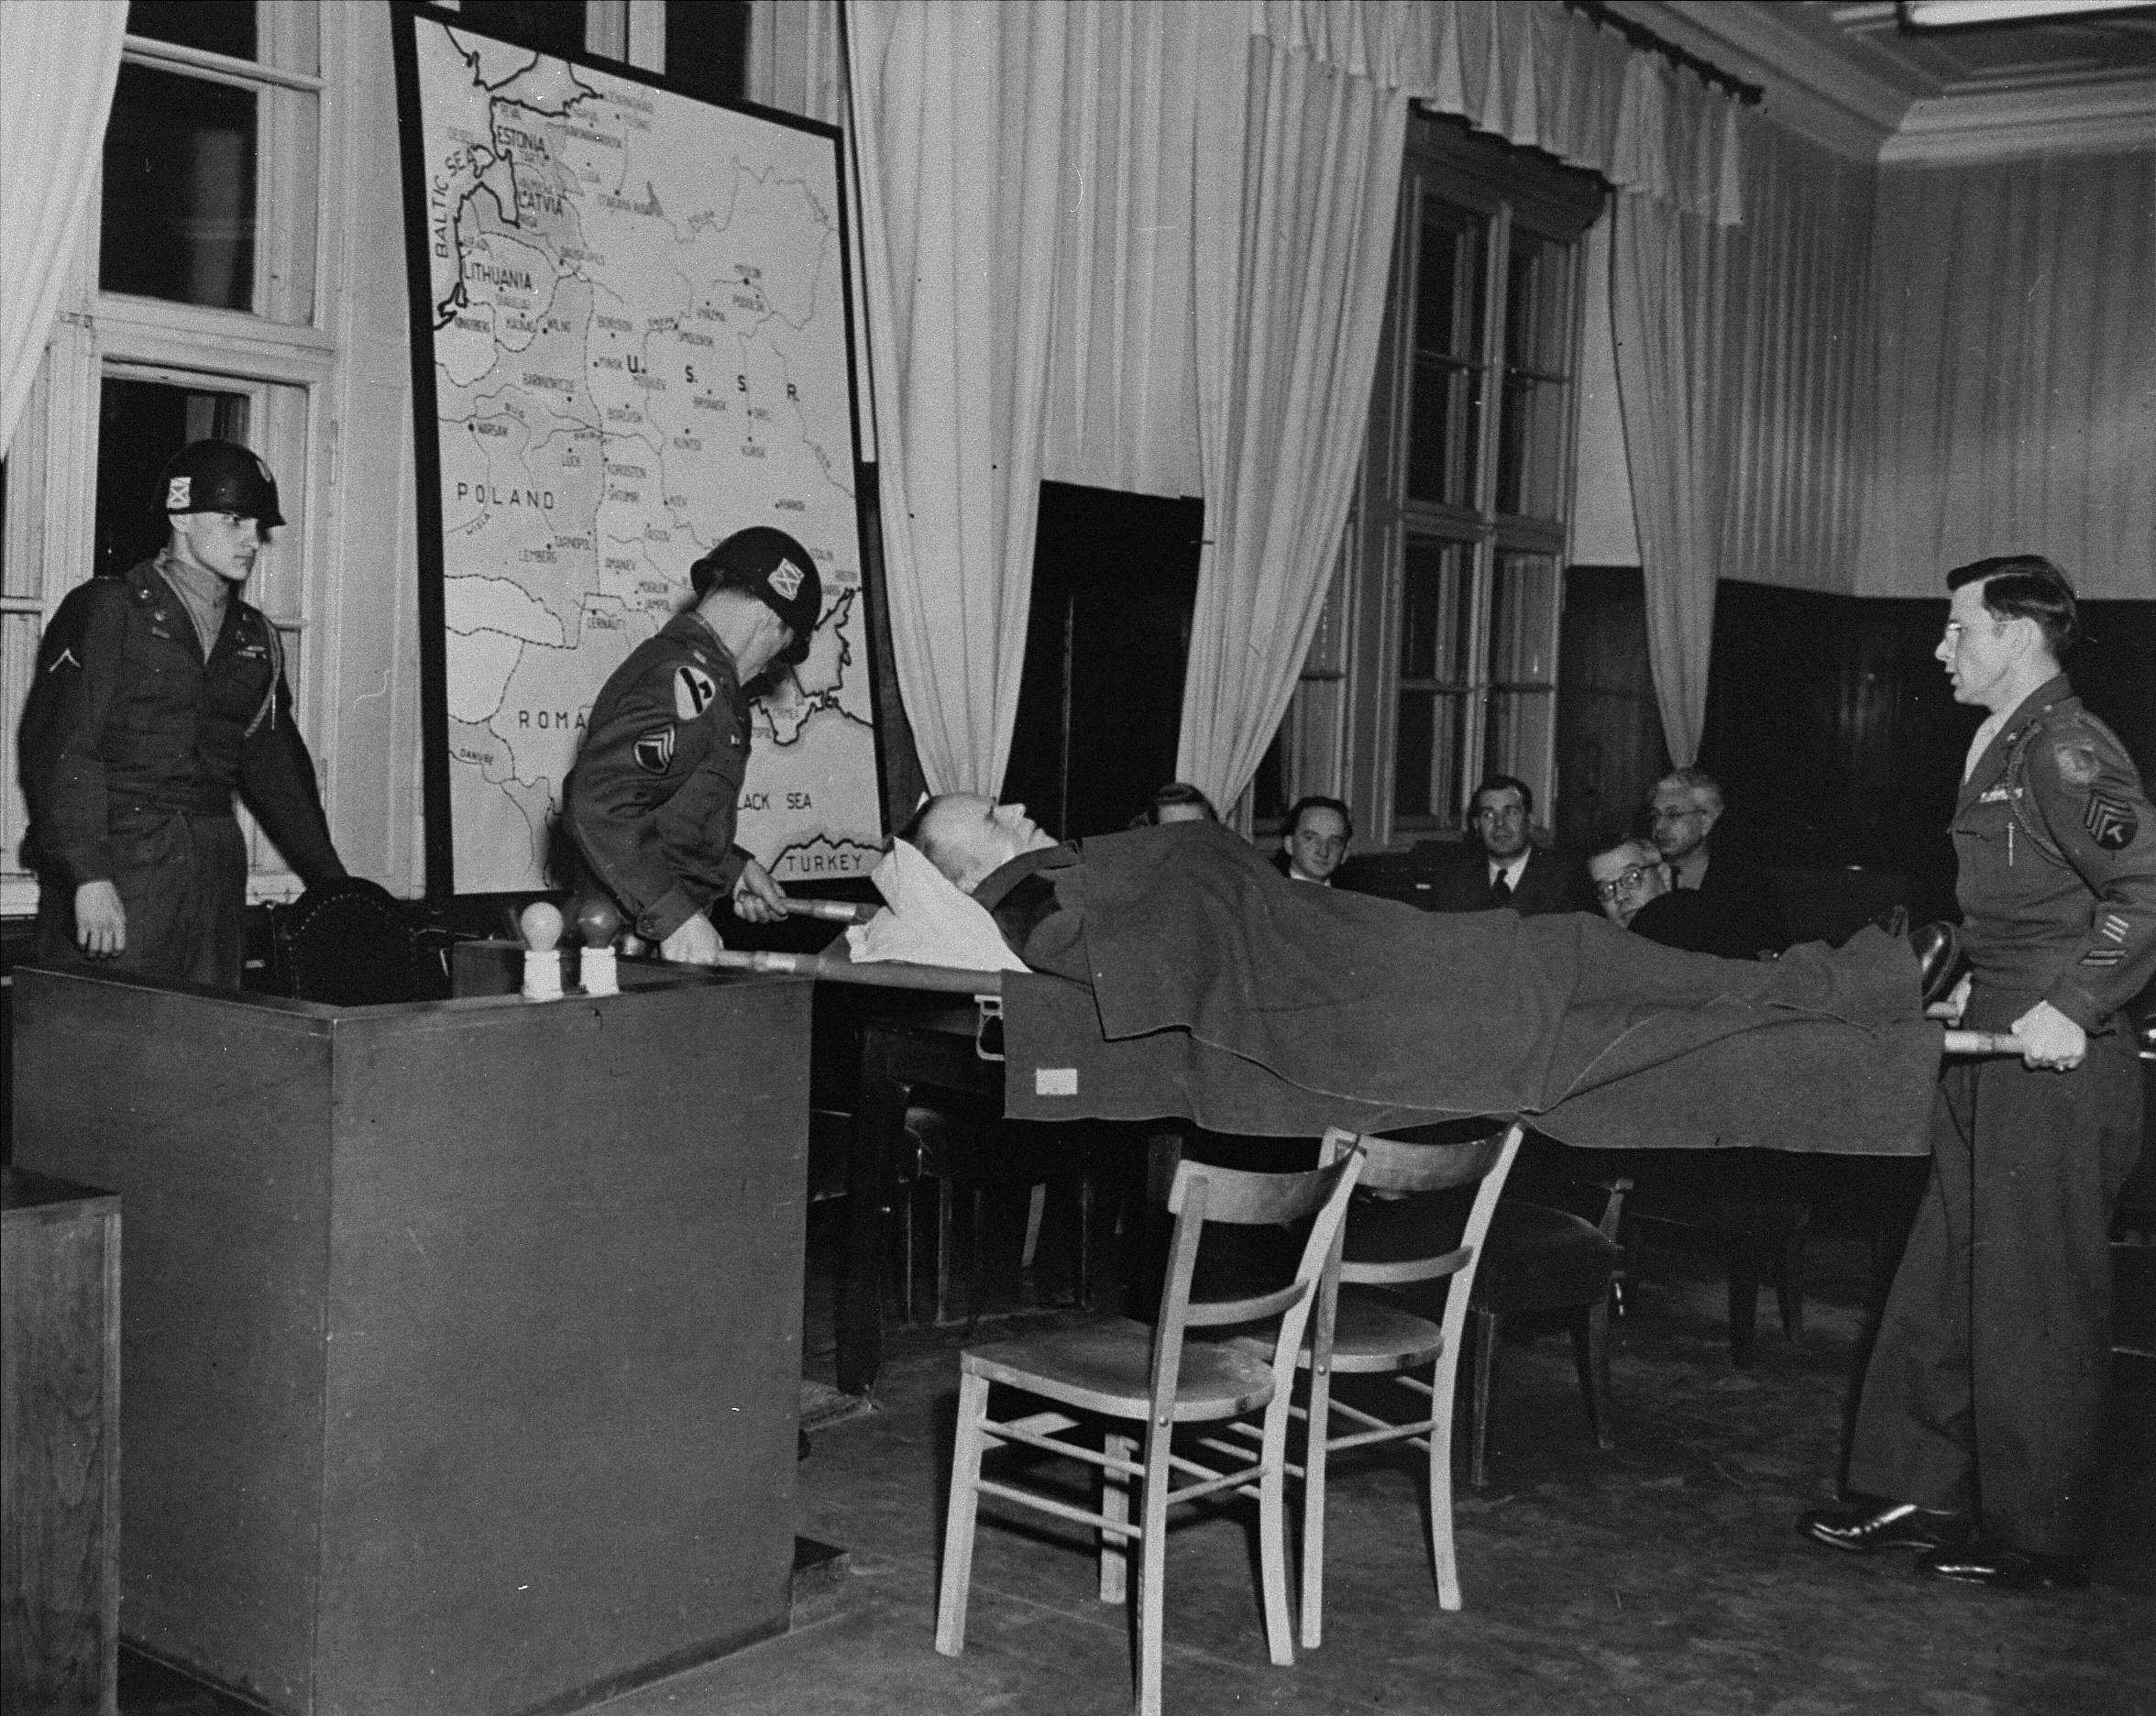 Defendant Otto Rasch gives testimony in a smaller courtroom in the Palace of Justice during the Einsatzgruppen Trial.    Due to his mental and physical instability, the case against him was discontinued on 5 February 1948 and he subsequently died on 1 November 1948.